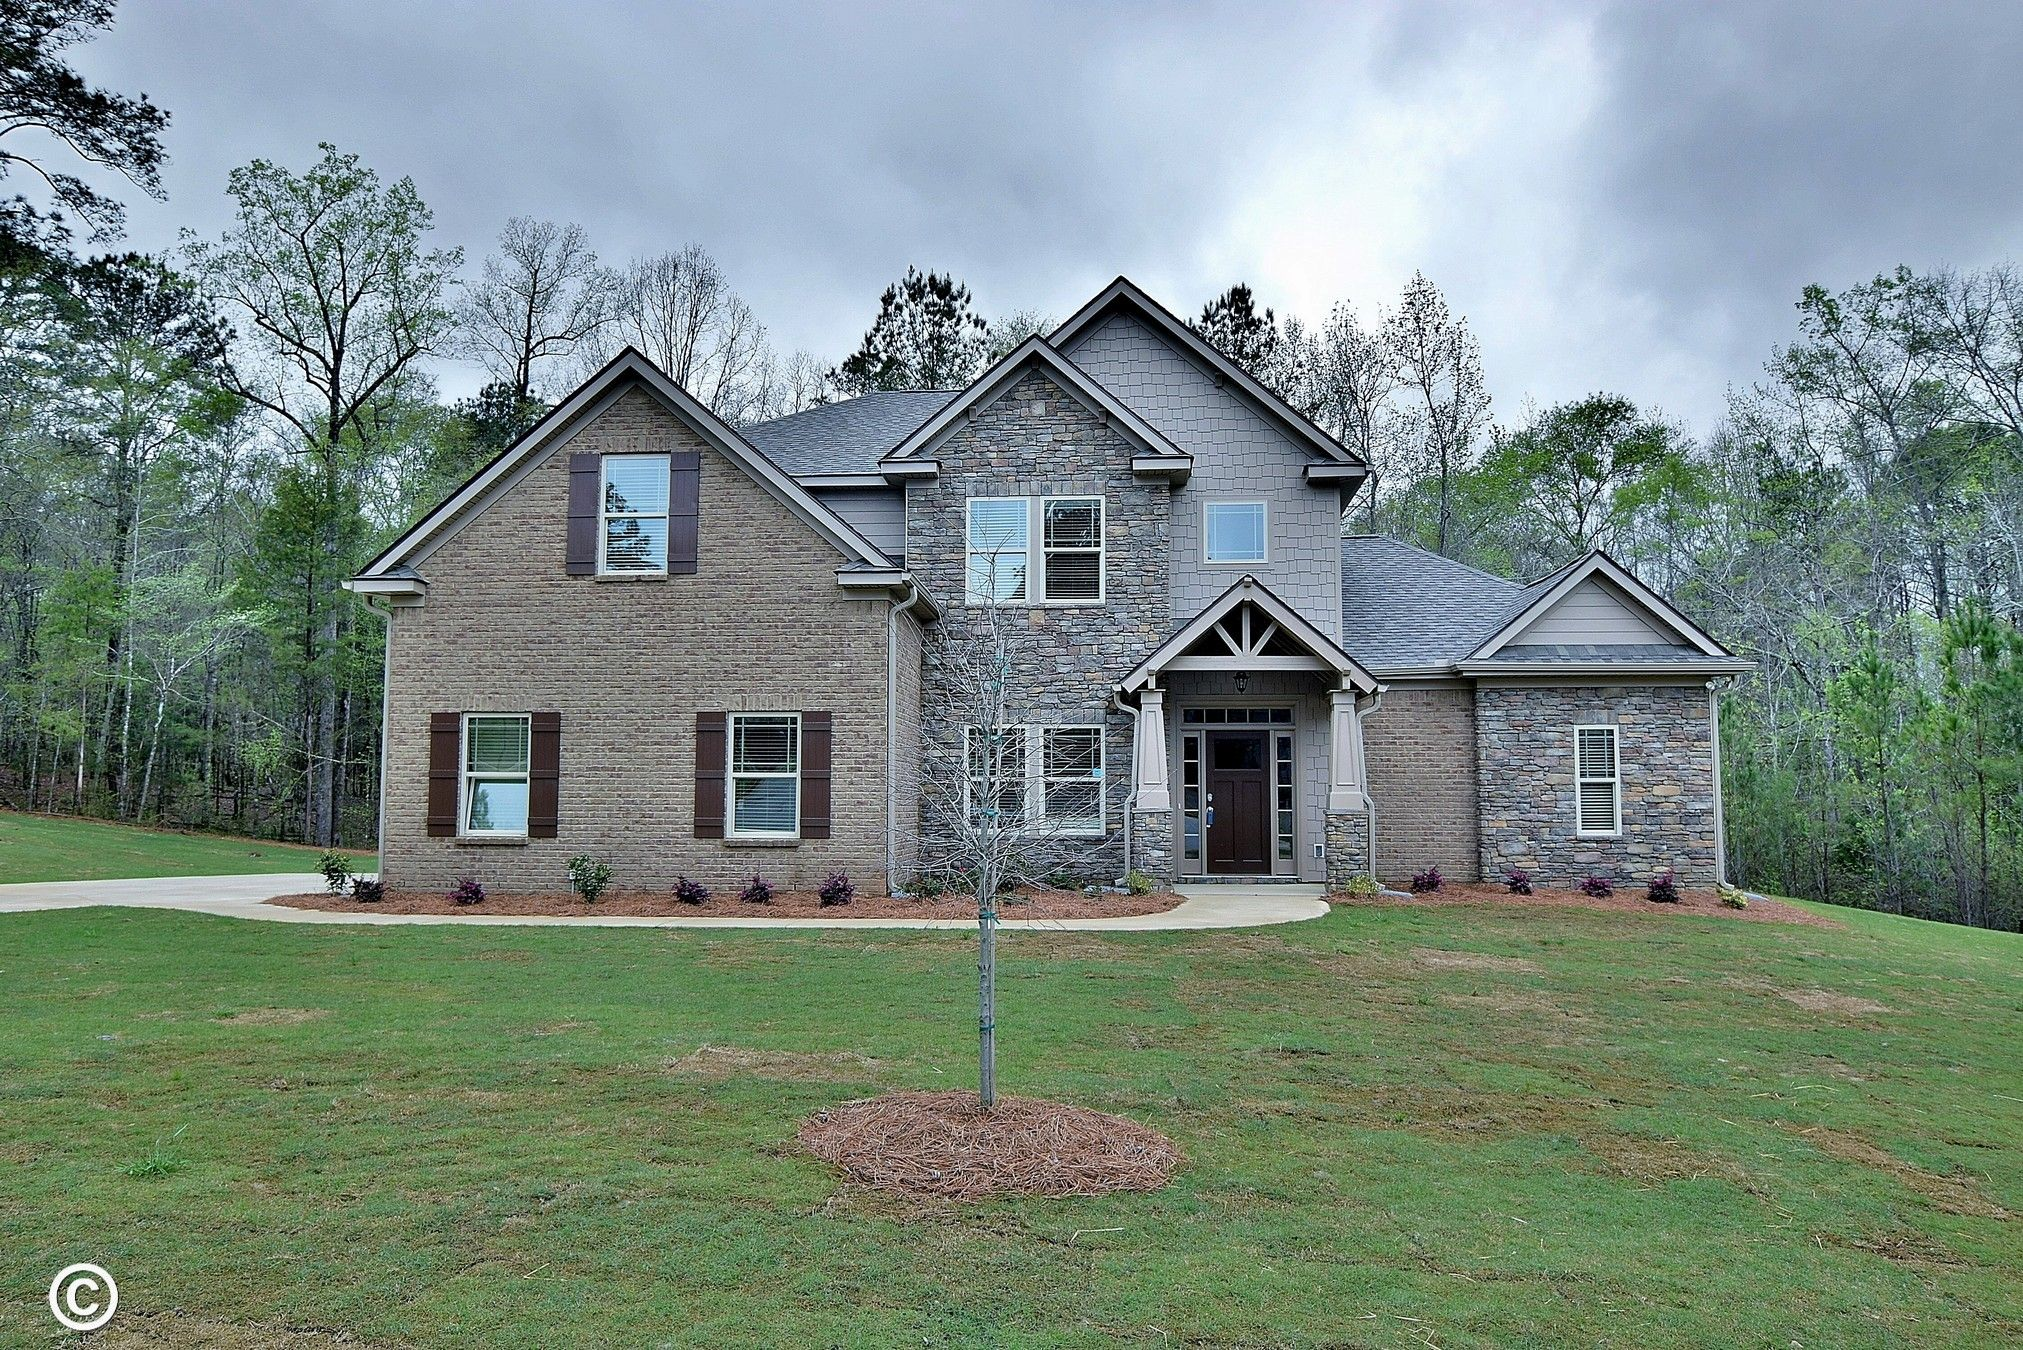 Single Family for Active at Sable Oaks - Aspen - Georgia 10230 Sable Court Midland, Georgia 31820 United States